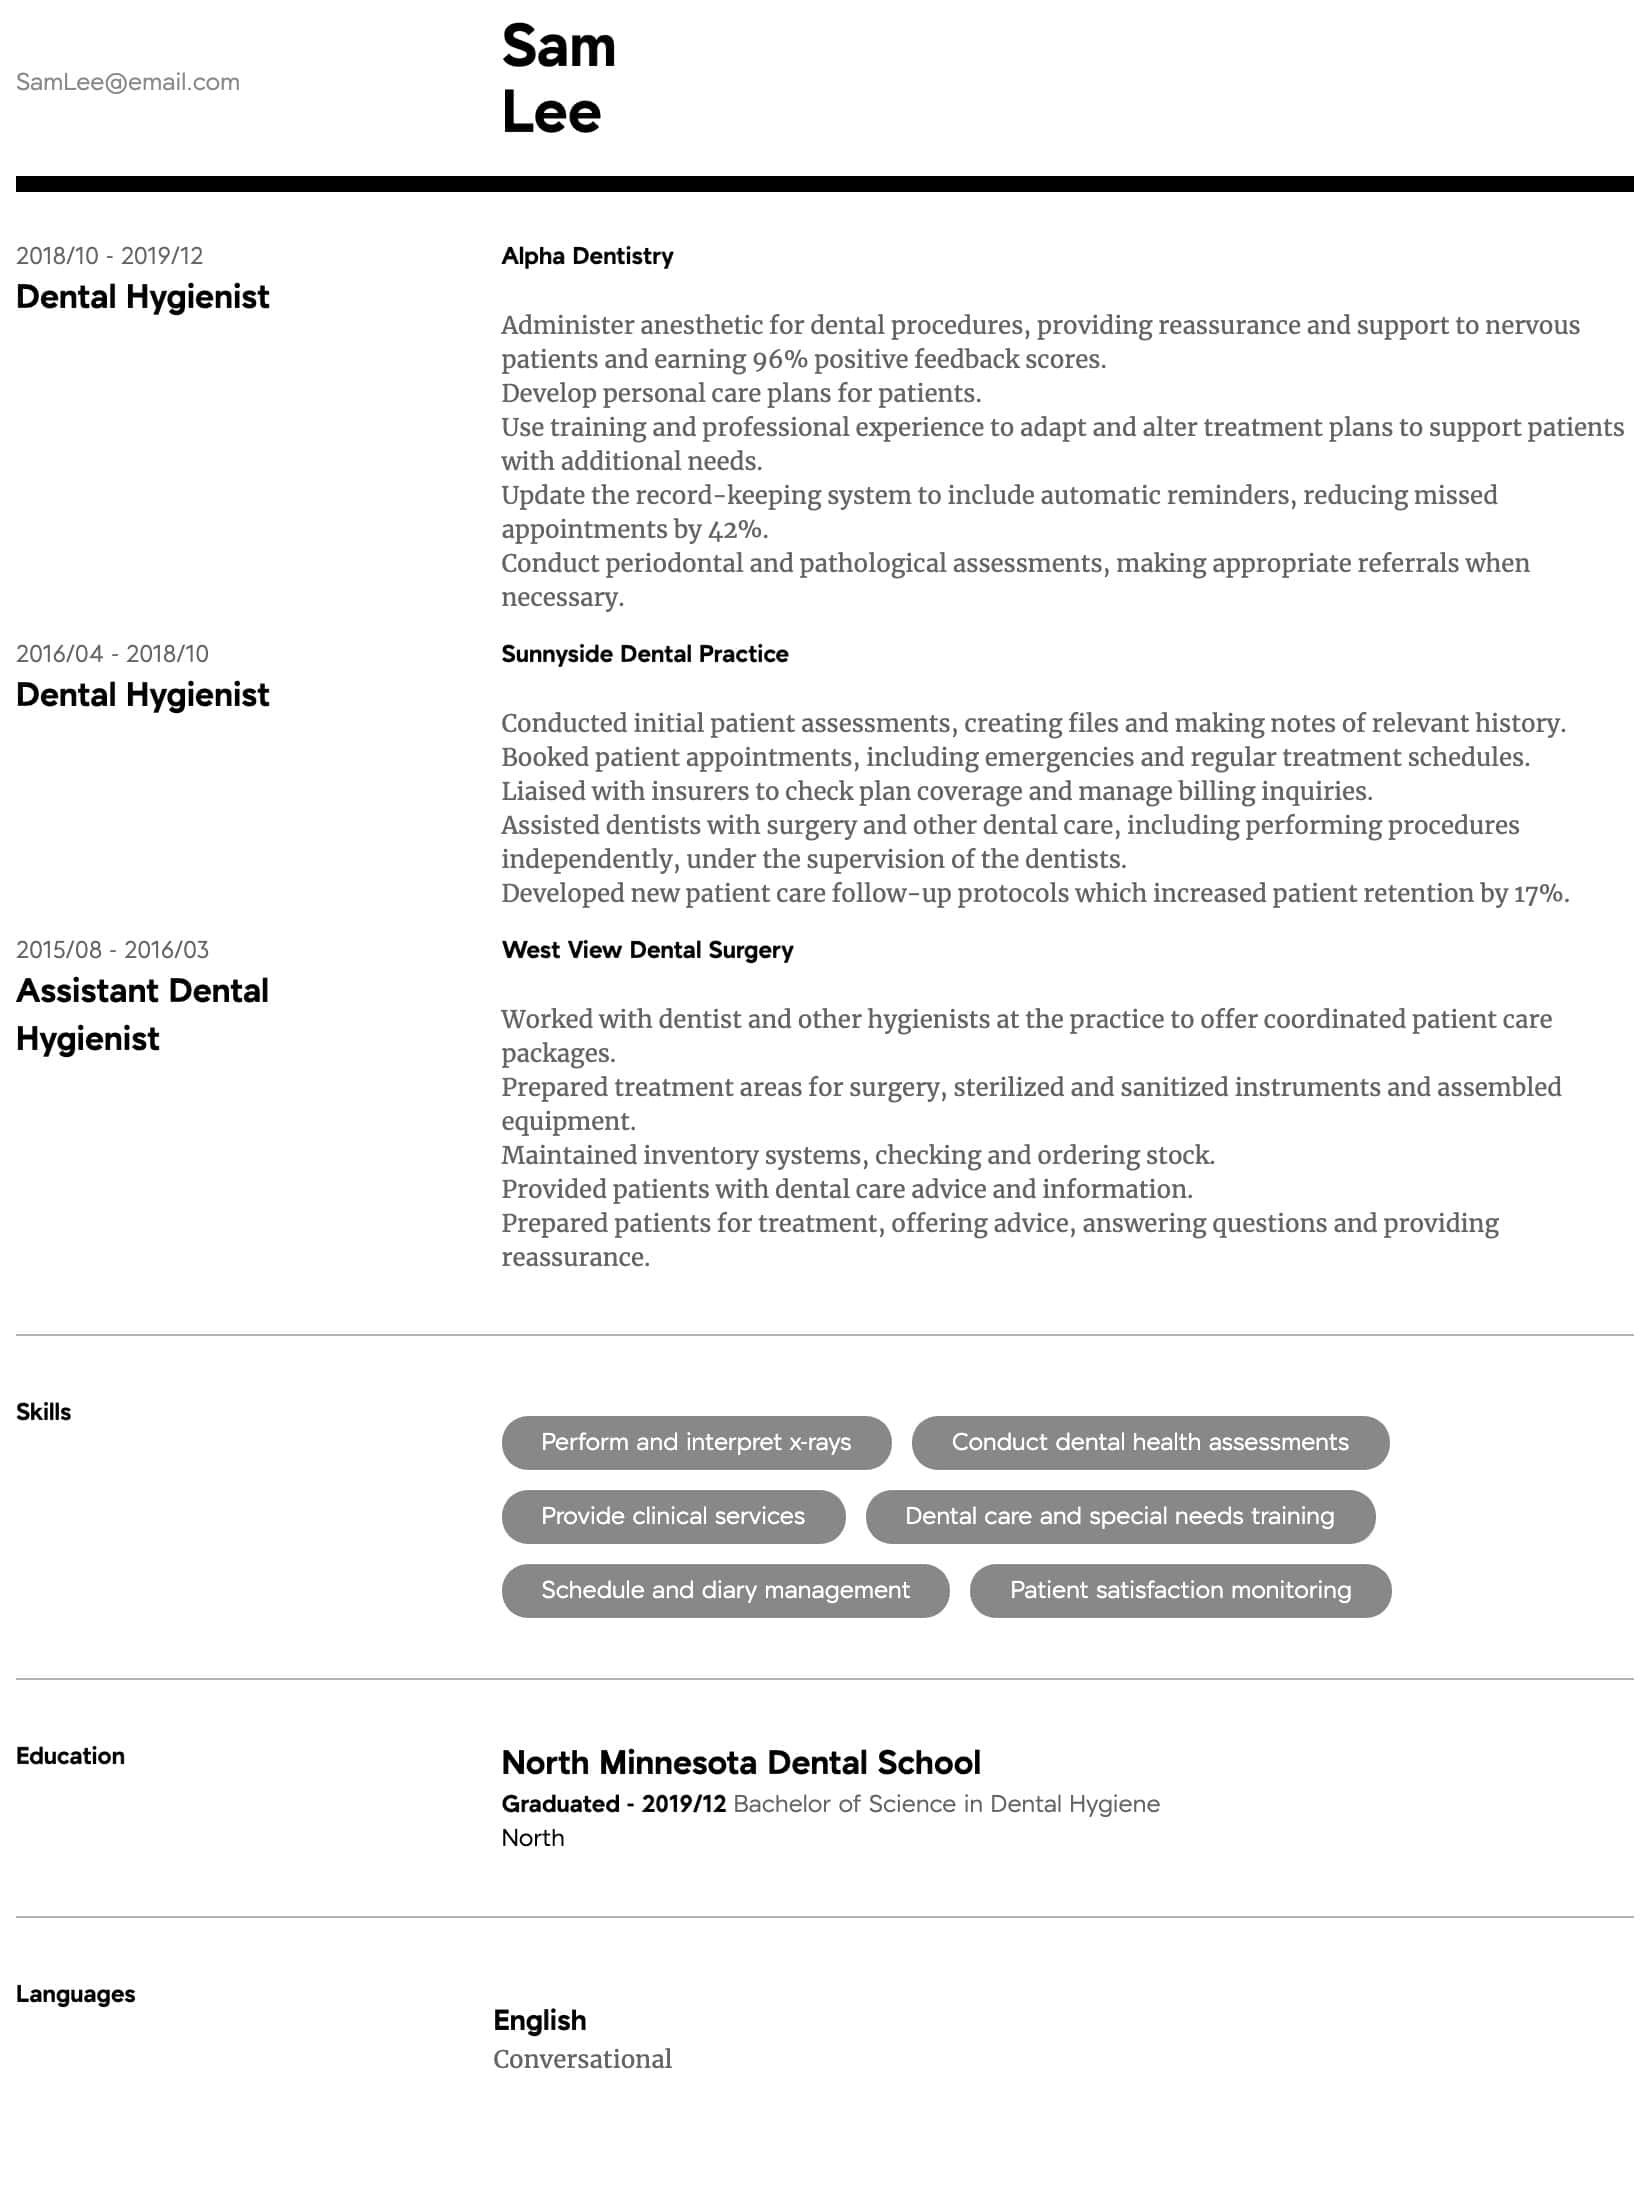 thumbnail image of Dental Hygienist resume from Resume.com